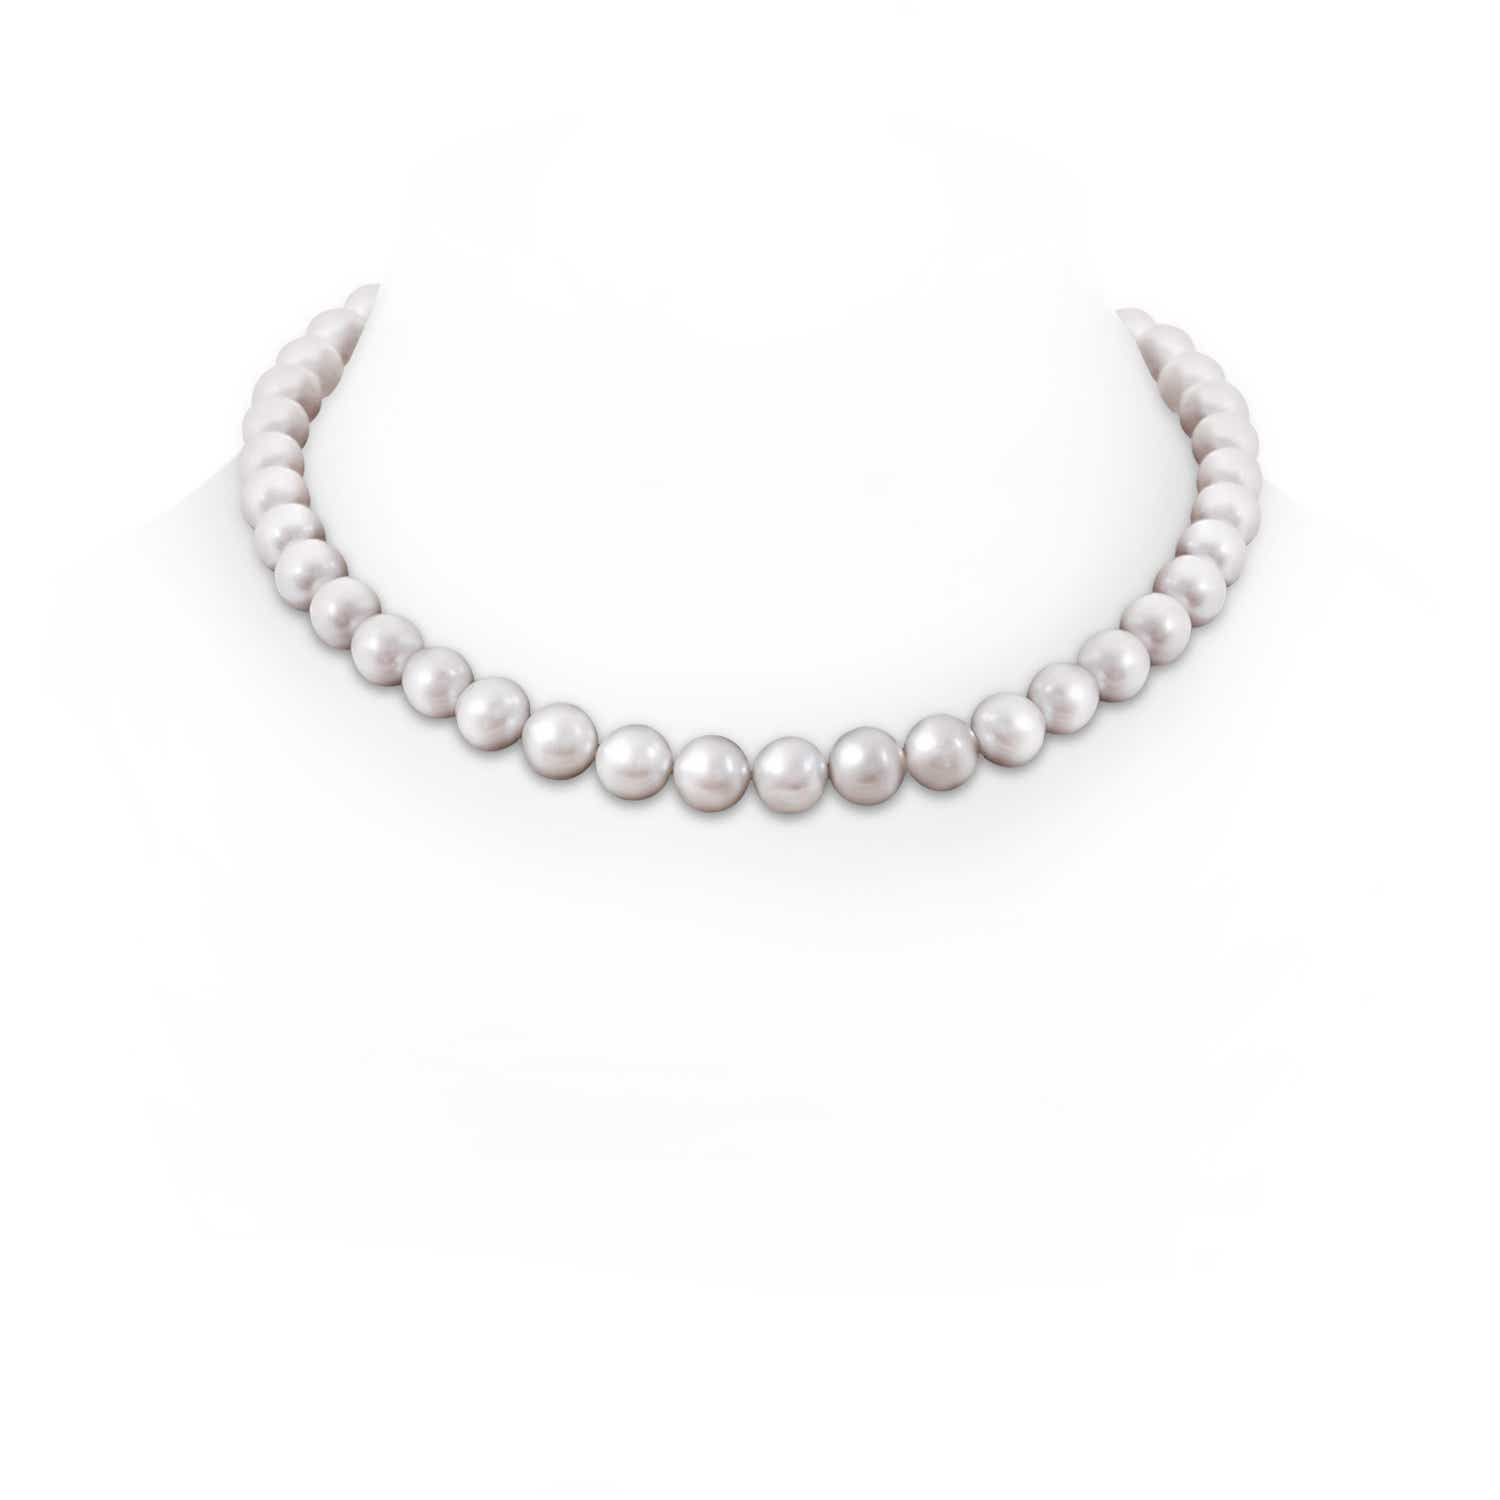 10 11mm, 18 Classic Freshwater Cultured Pearl Necklace